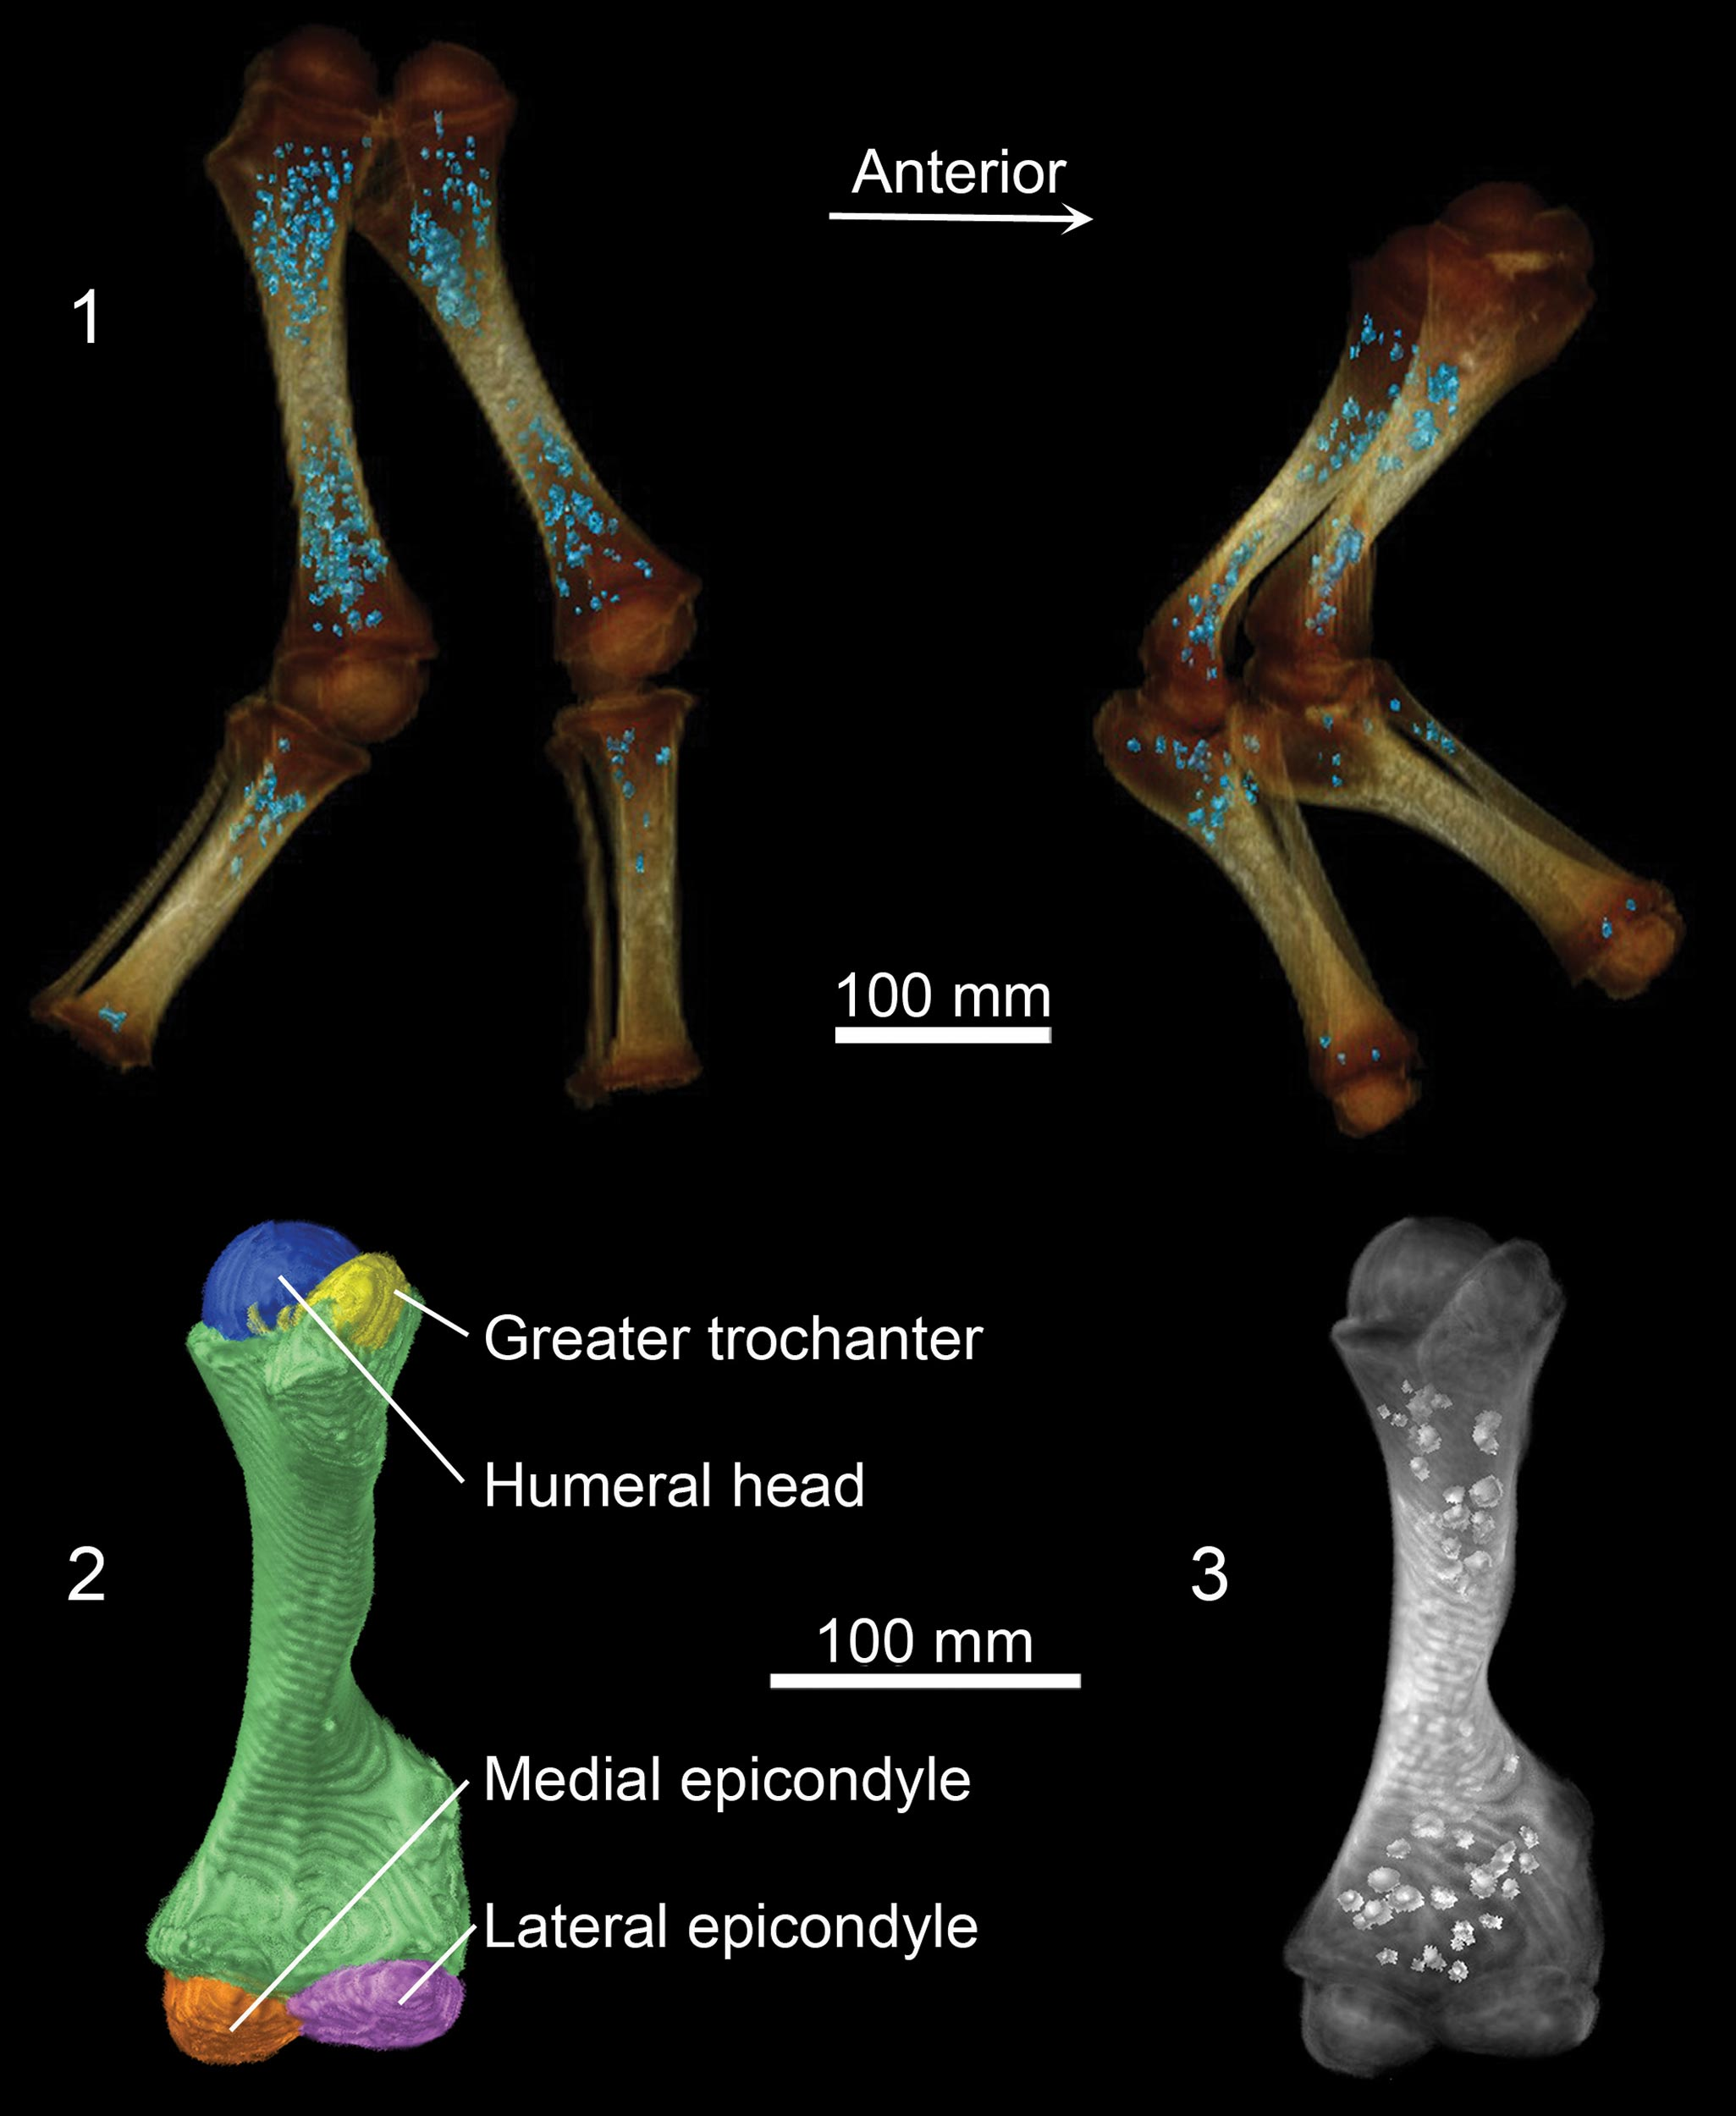 CT images showing Lyuba's hind legs (top left) and front legs (top right). Bone shafts that are already well-hardened are white, and poorly mineralized ends of bones are brown. Blue dots within leg bones represent an iron phosphate mineral that follows the location of iron stores related to hemoglobin production while the calf was alive. Bottom images show Lyuba's developing left humerus, or upper arm bone. Reflective spheroids on lower right image show location of iron phosphate mineral in this bone. Image credit: University of Michigan Museum of Paleontology